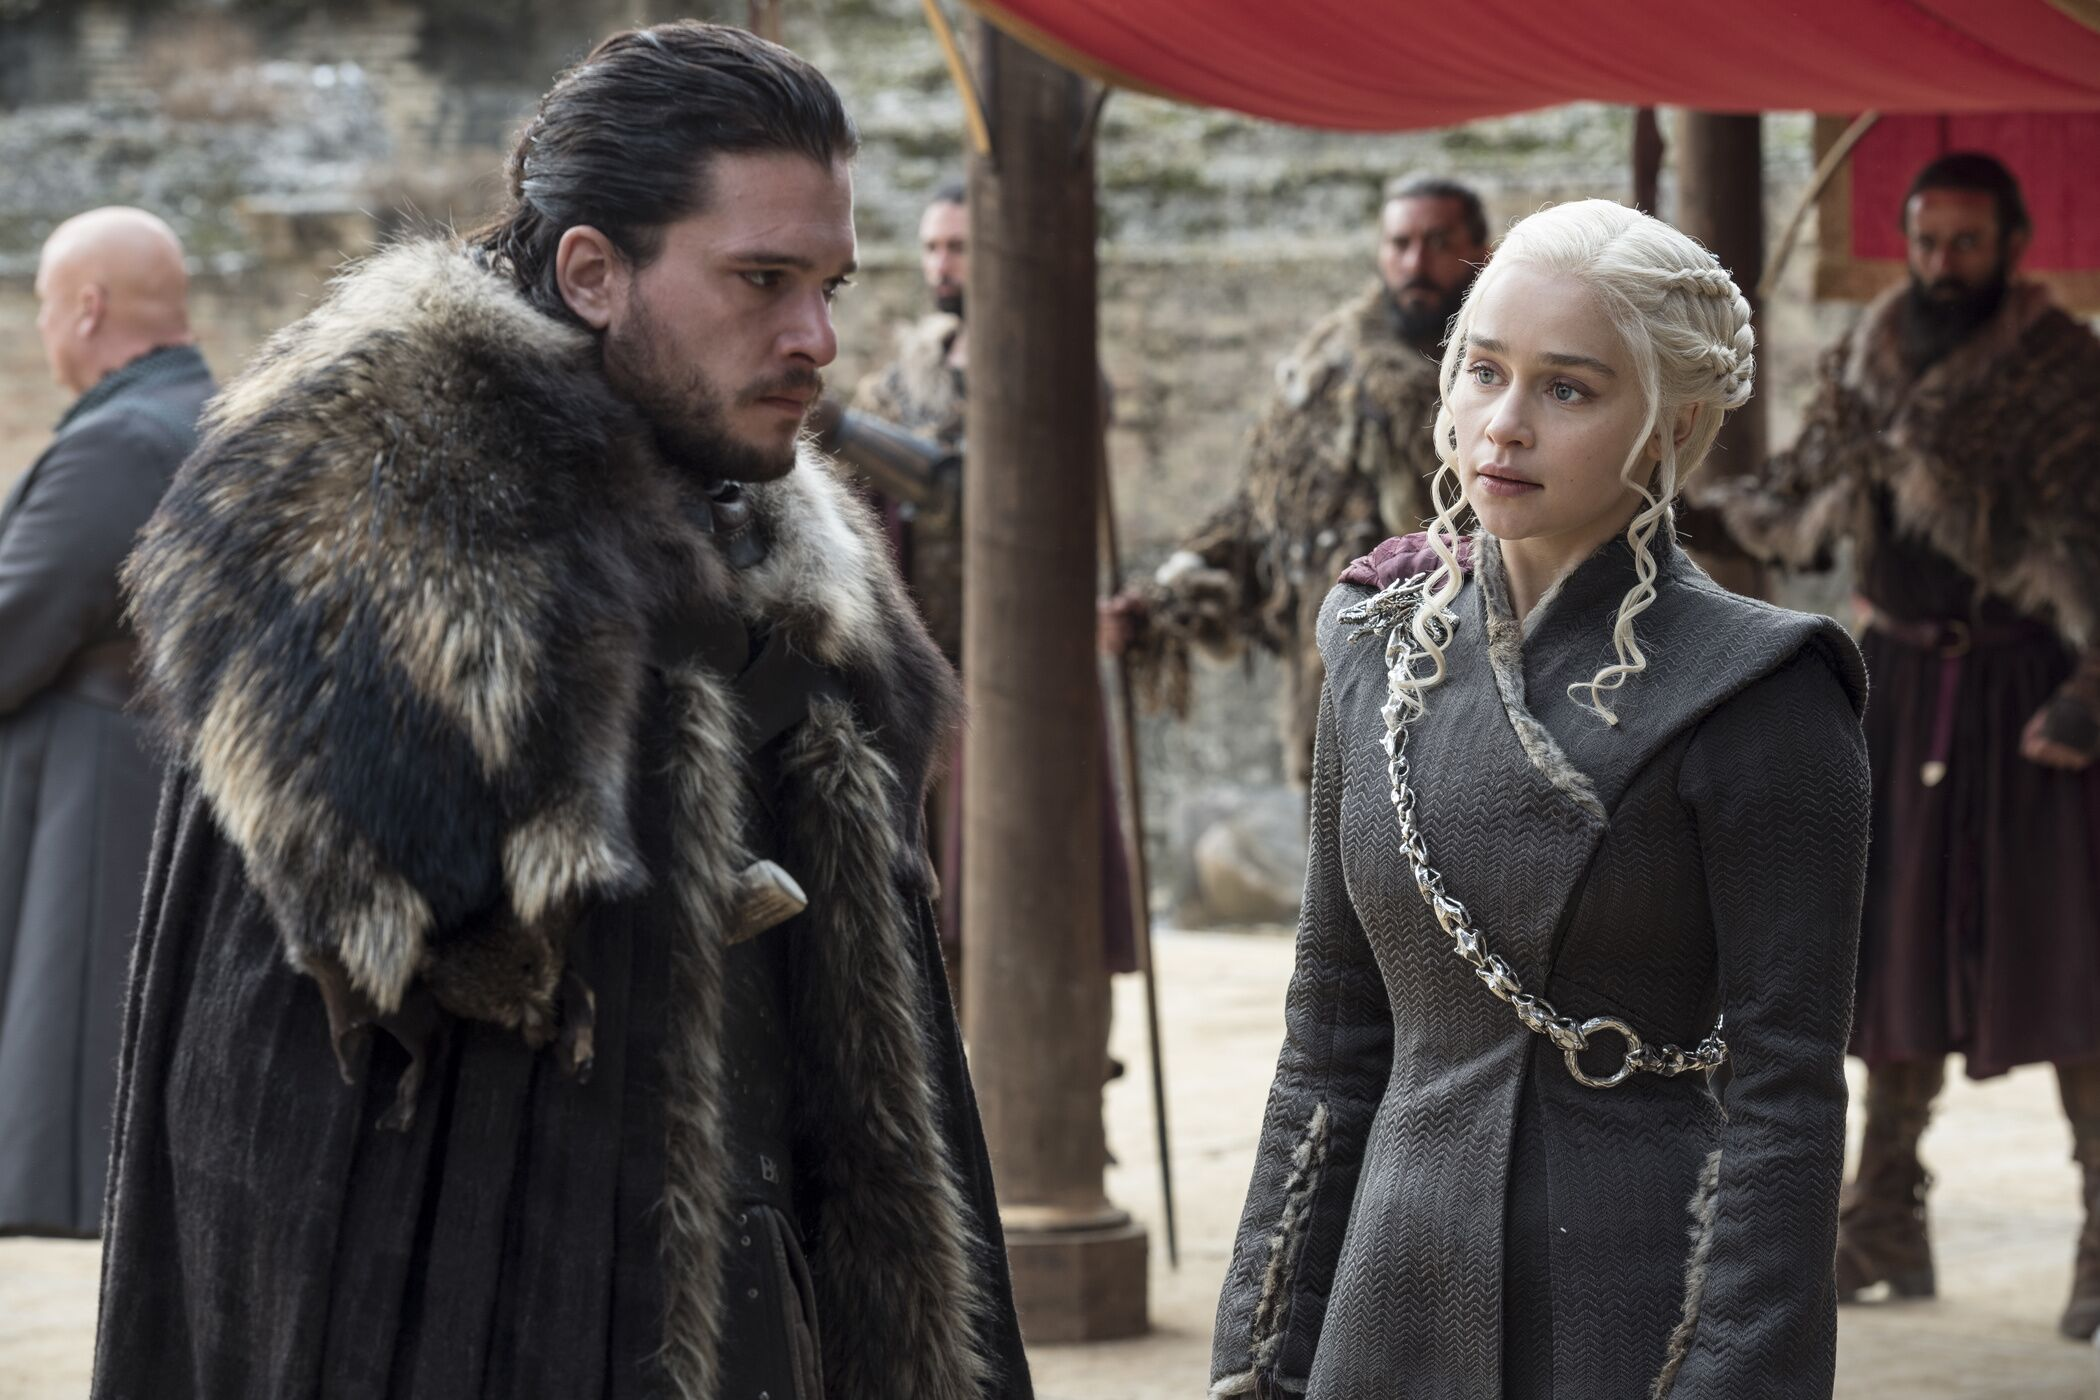 Game of Thrones: Will Jon Snow choose love over family?